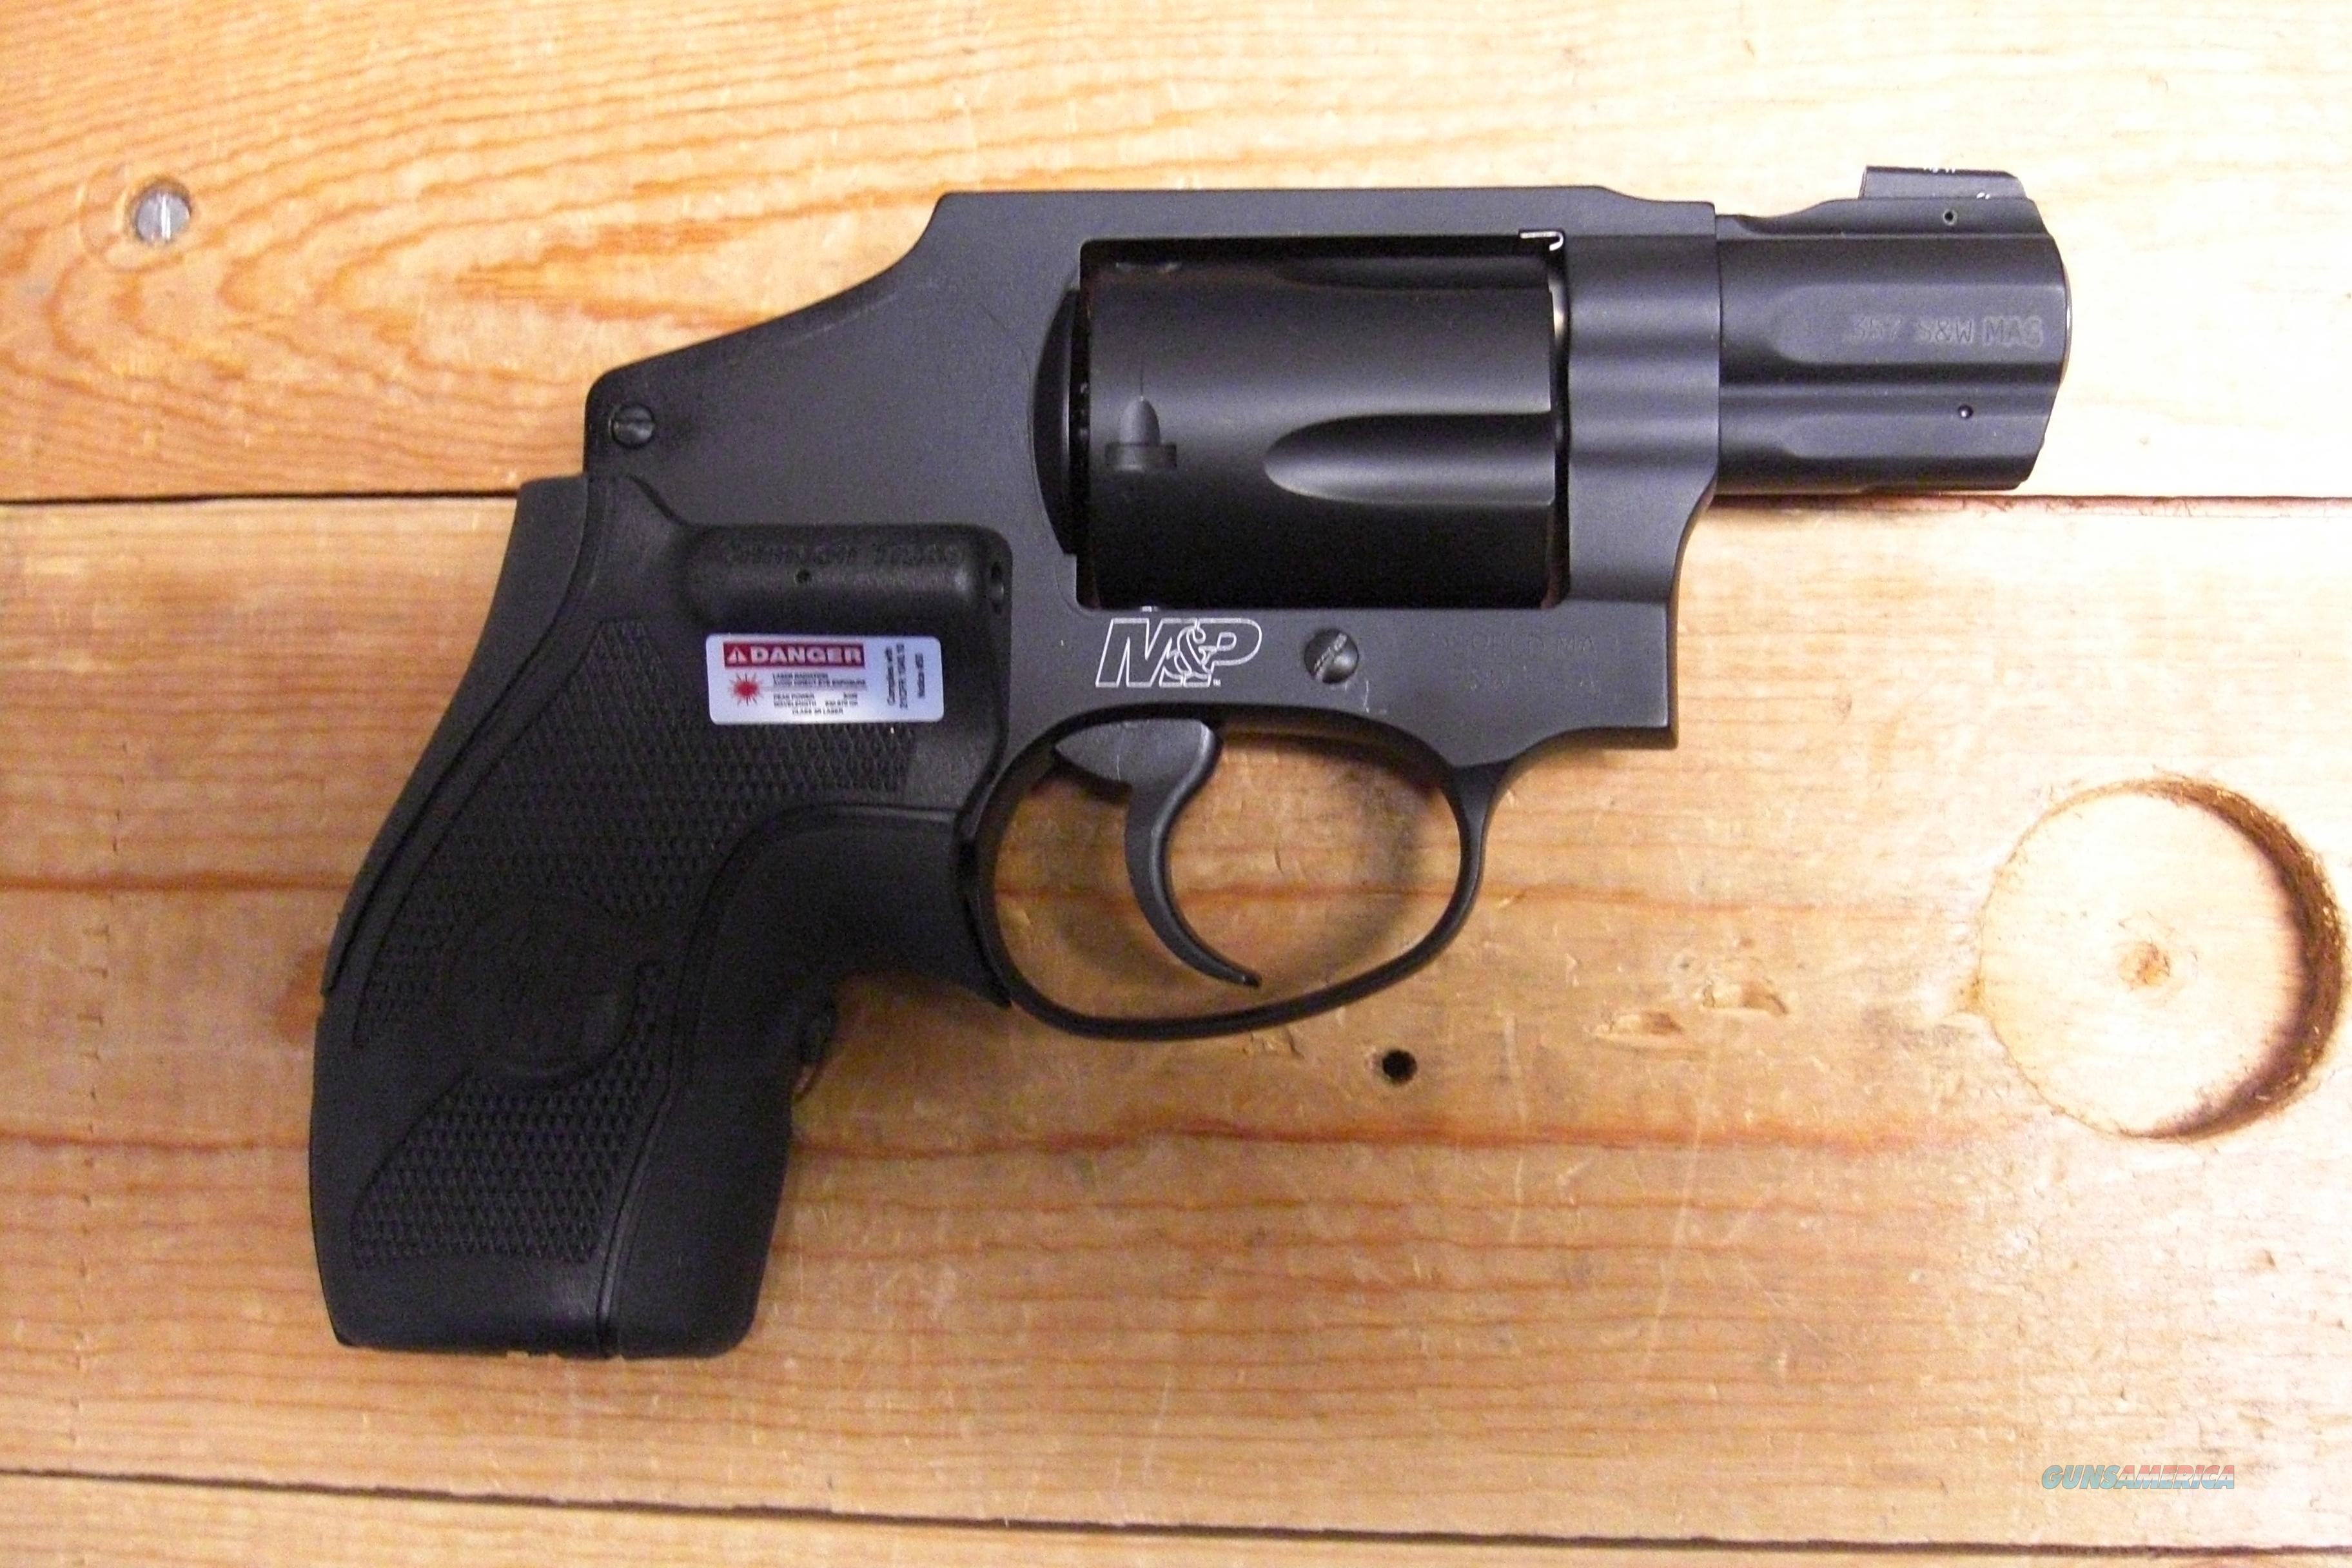 M & P 340  w/laser grip, front night sight  Guns > Pistols > Smith & Wesson Revolvers > Pocket Pistols